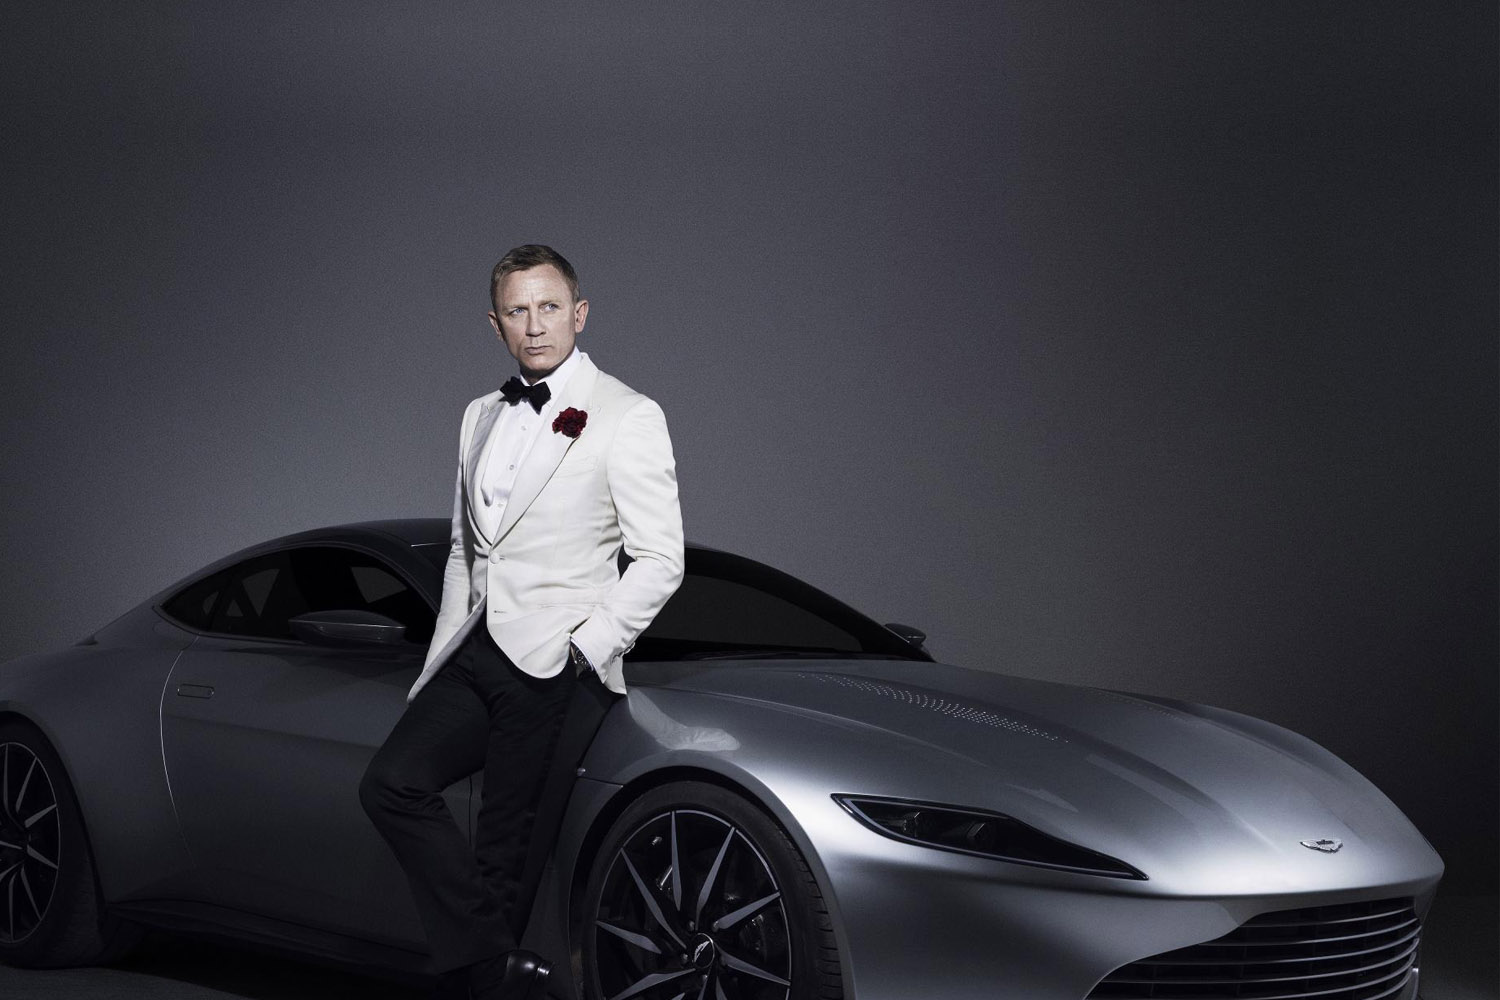 Christie's James Bond Spectre Auction - Including a prototype of Omega Seamaster 300 Spectre worn by Craig and one of 10 Aston Martin DB10